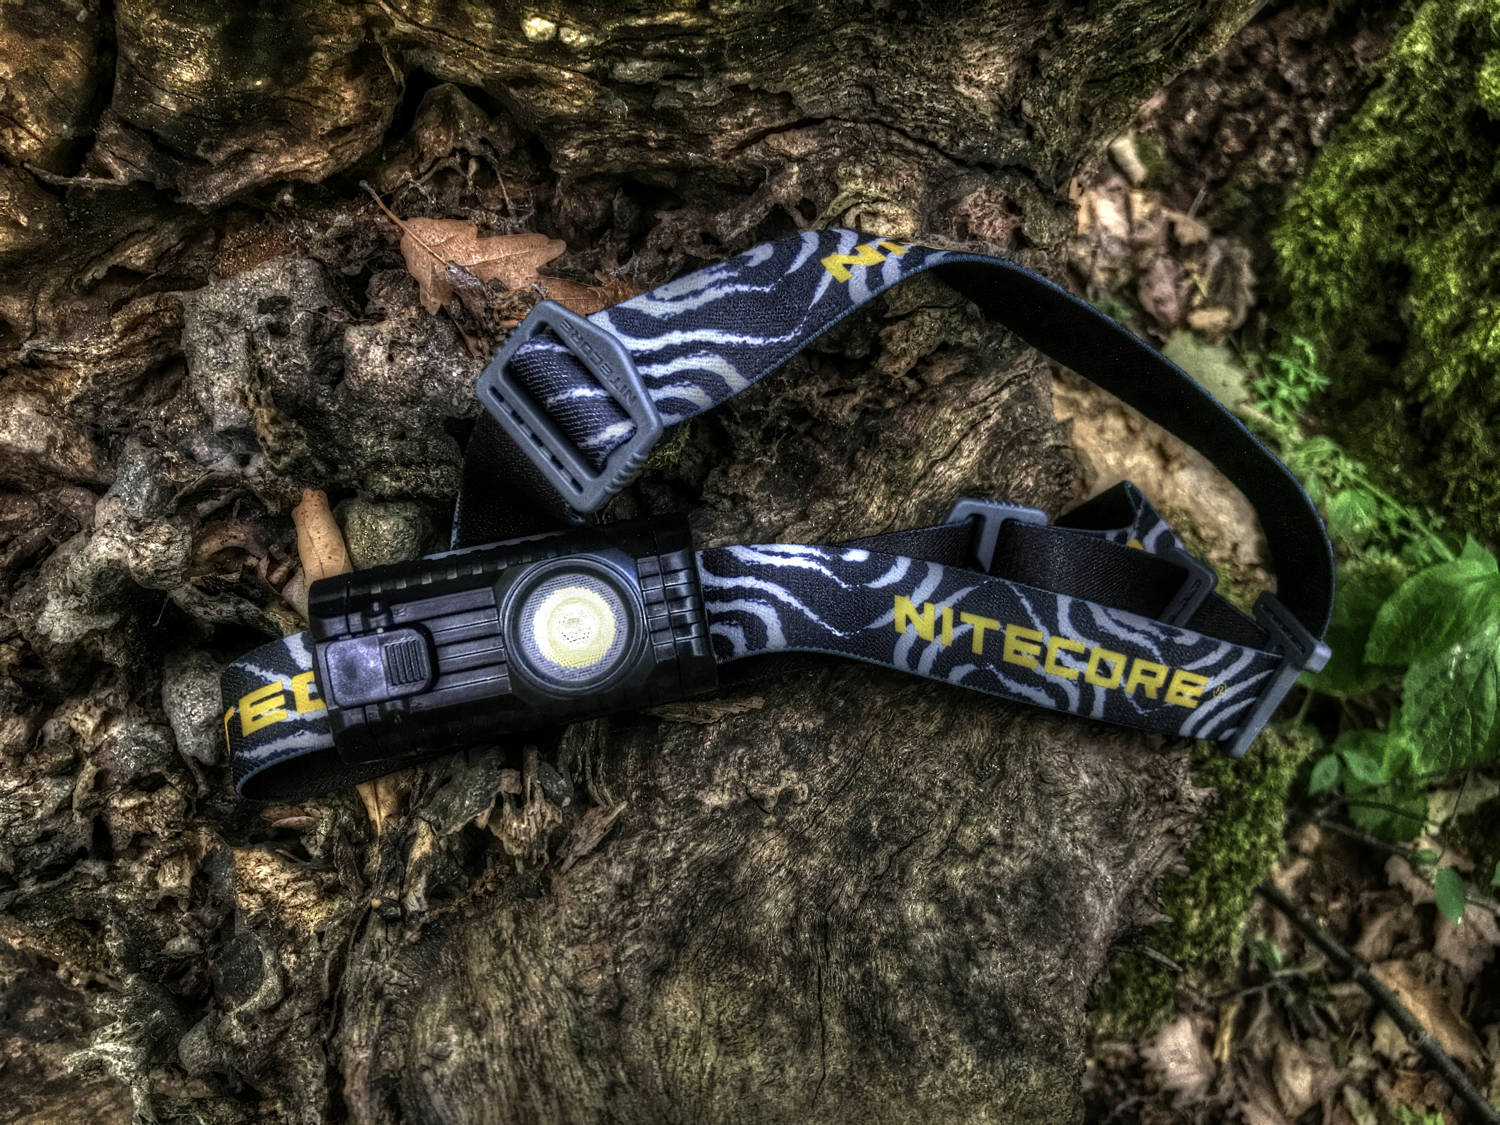 The NITECORE HA23 is a lightweight outdoor headlamp powered by 2 x AA batteries, the most accessible power source. What do you think about the AA batteries powered headlamp? 🤨😆